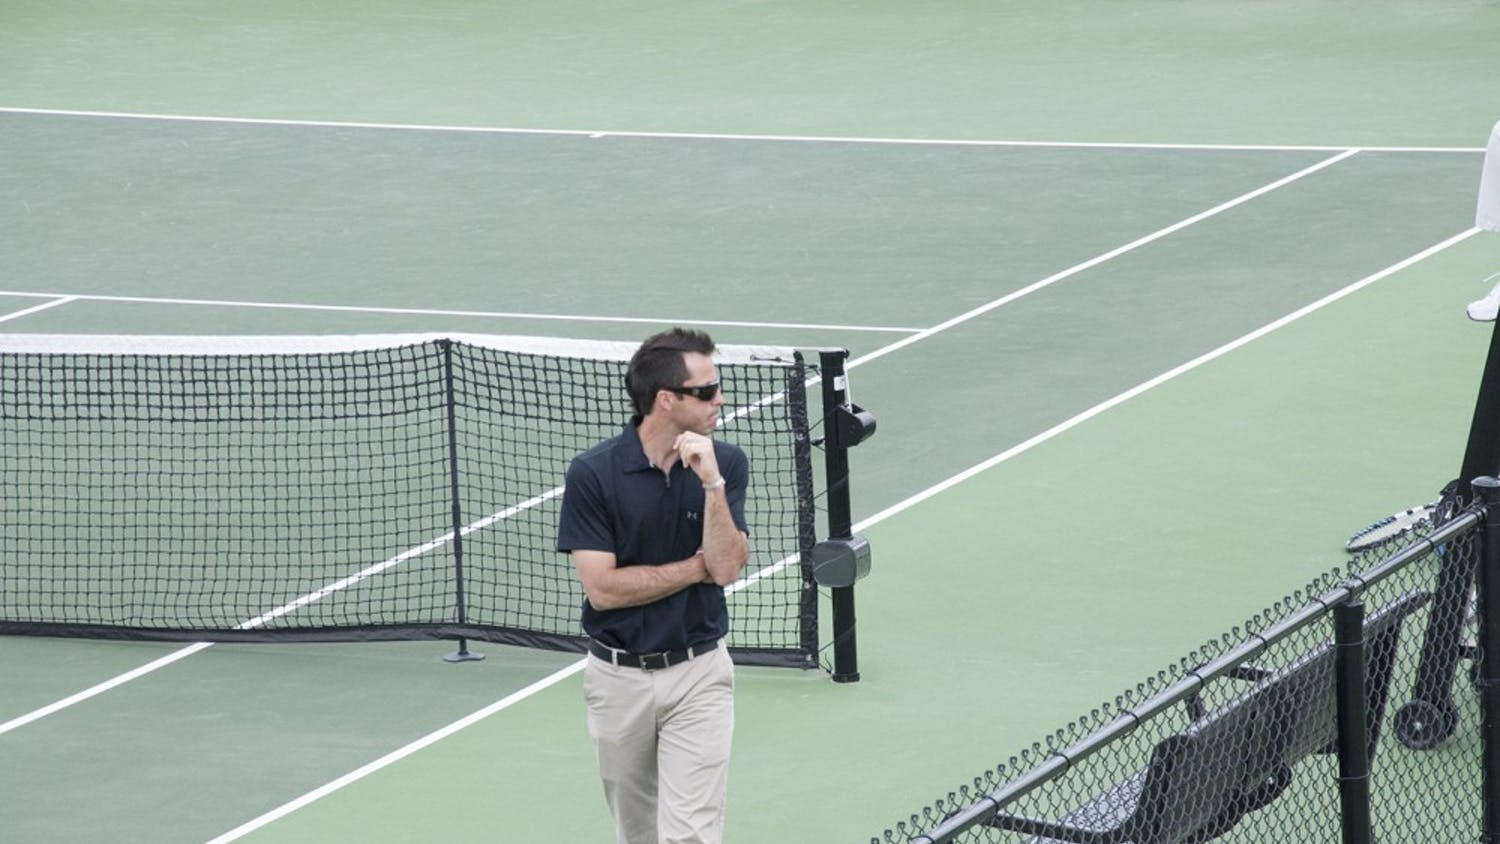 Men's tennis coach Josh Goffi was named the SEC's Coach of the Year last week.